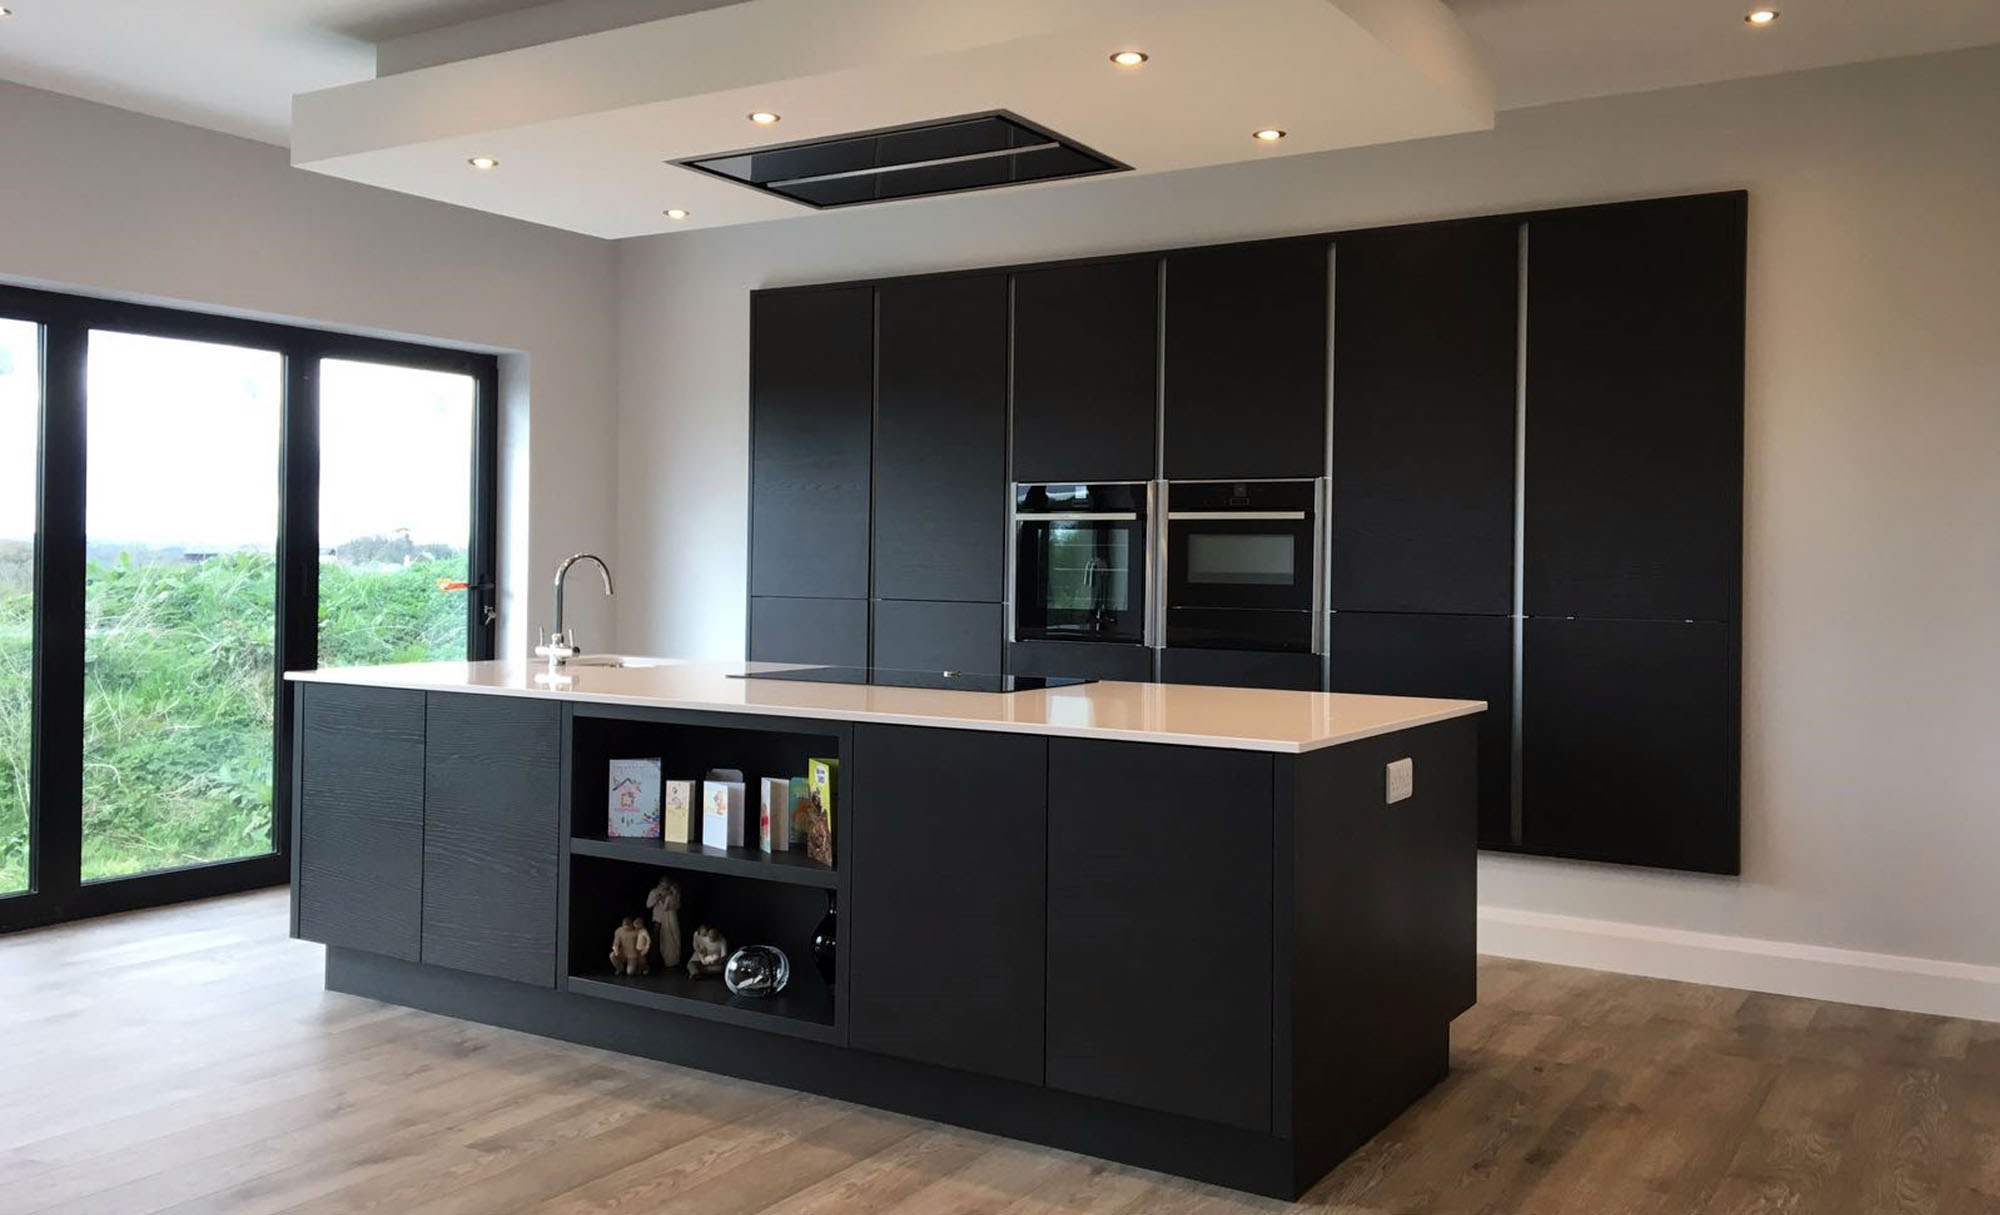 kitchen-stori-tavola-hacienda-black-coleraine-contemporary